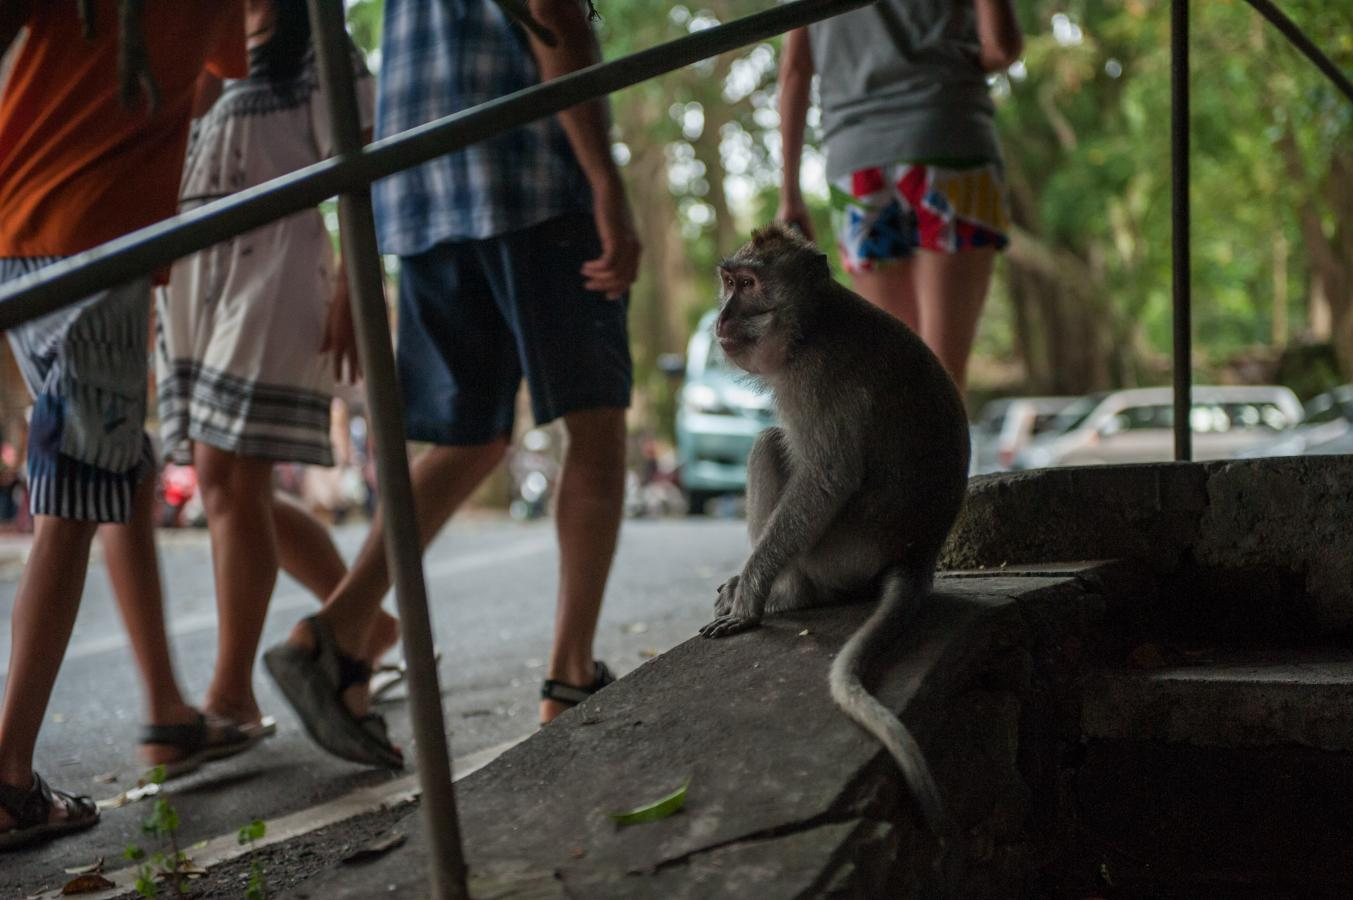 monkey-looking-at-the-people-ubud-bali-2013